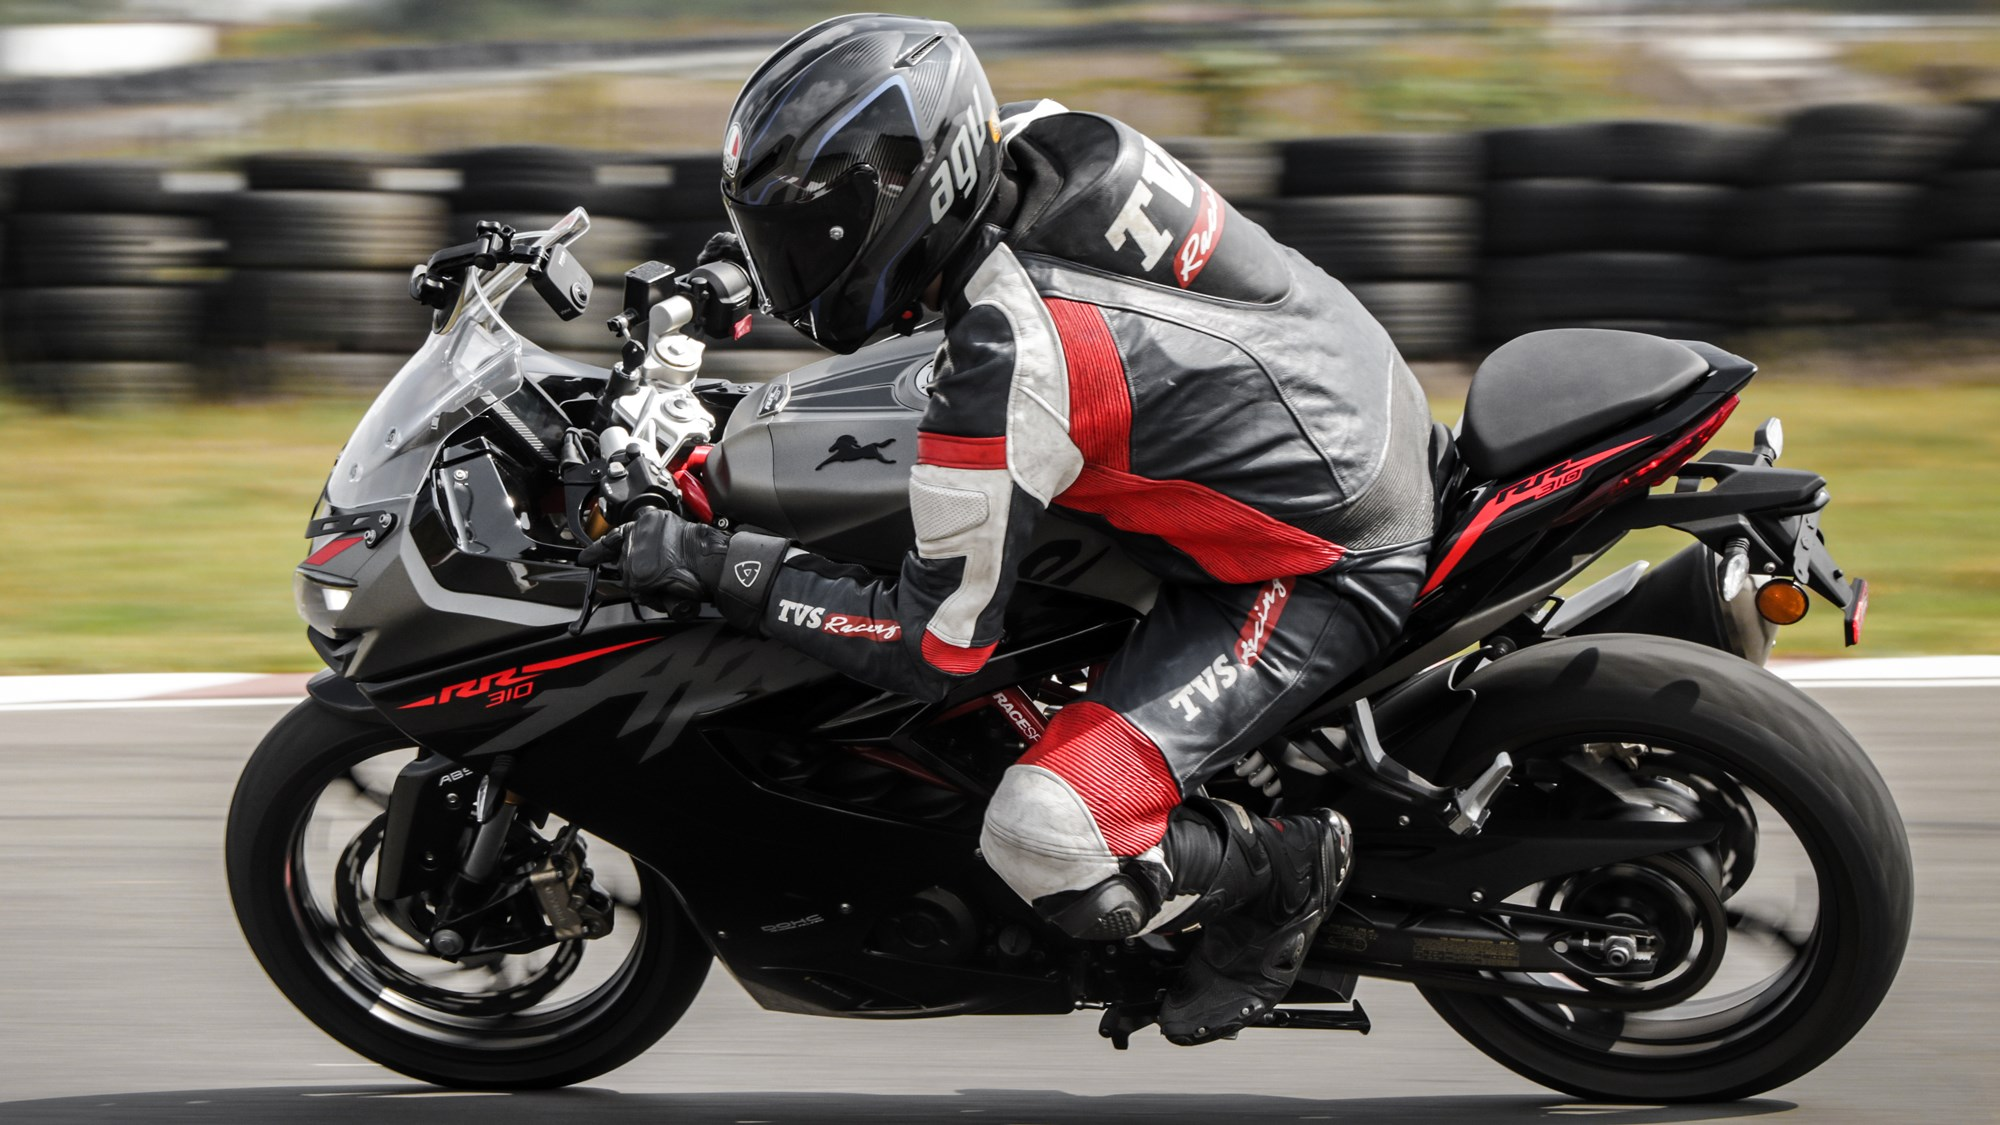 TVS Apache RR 310 BS6 review